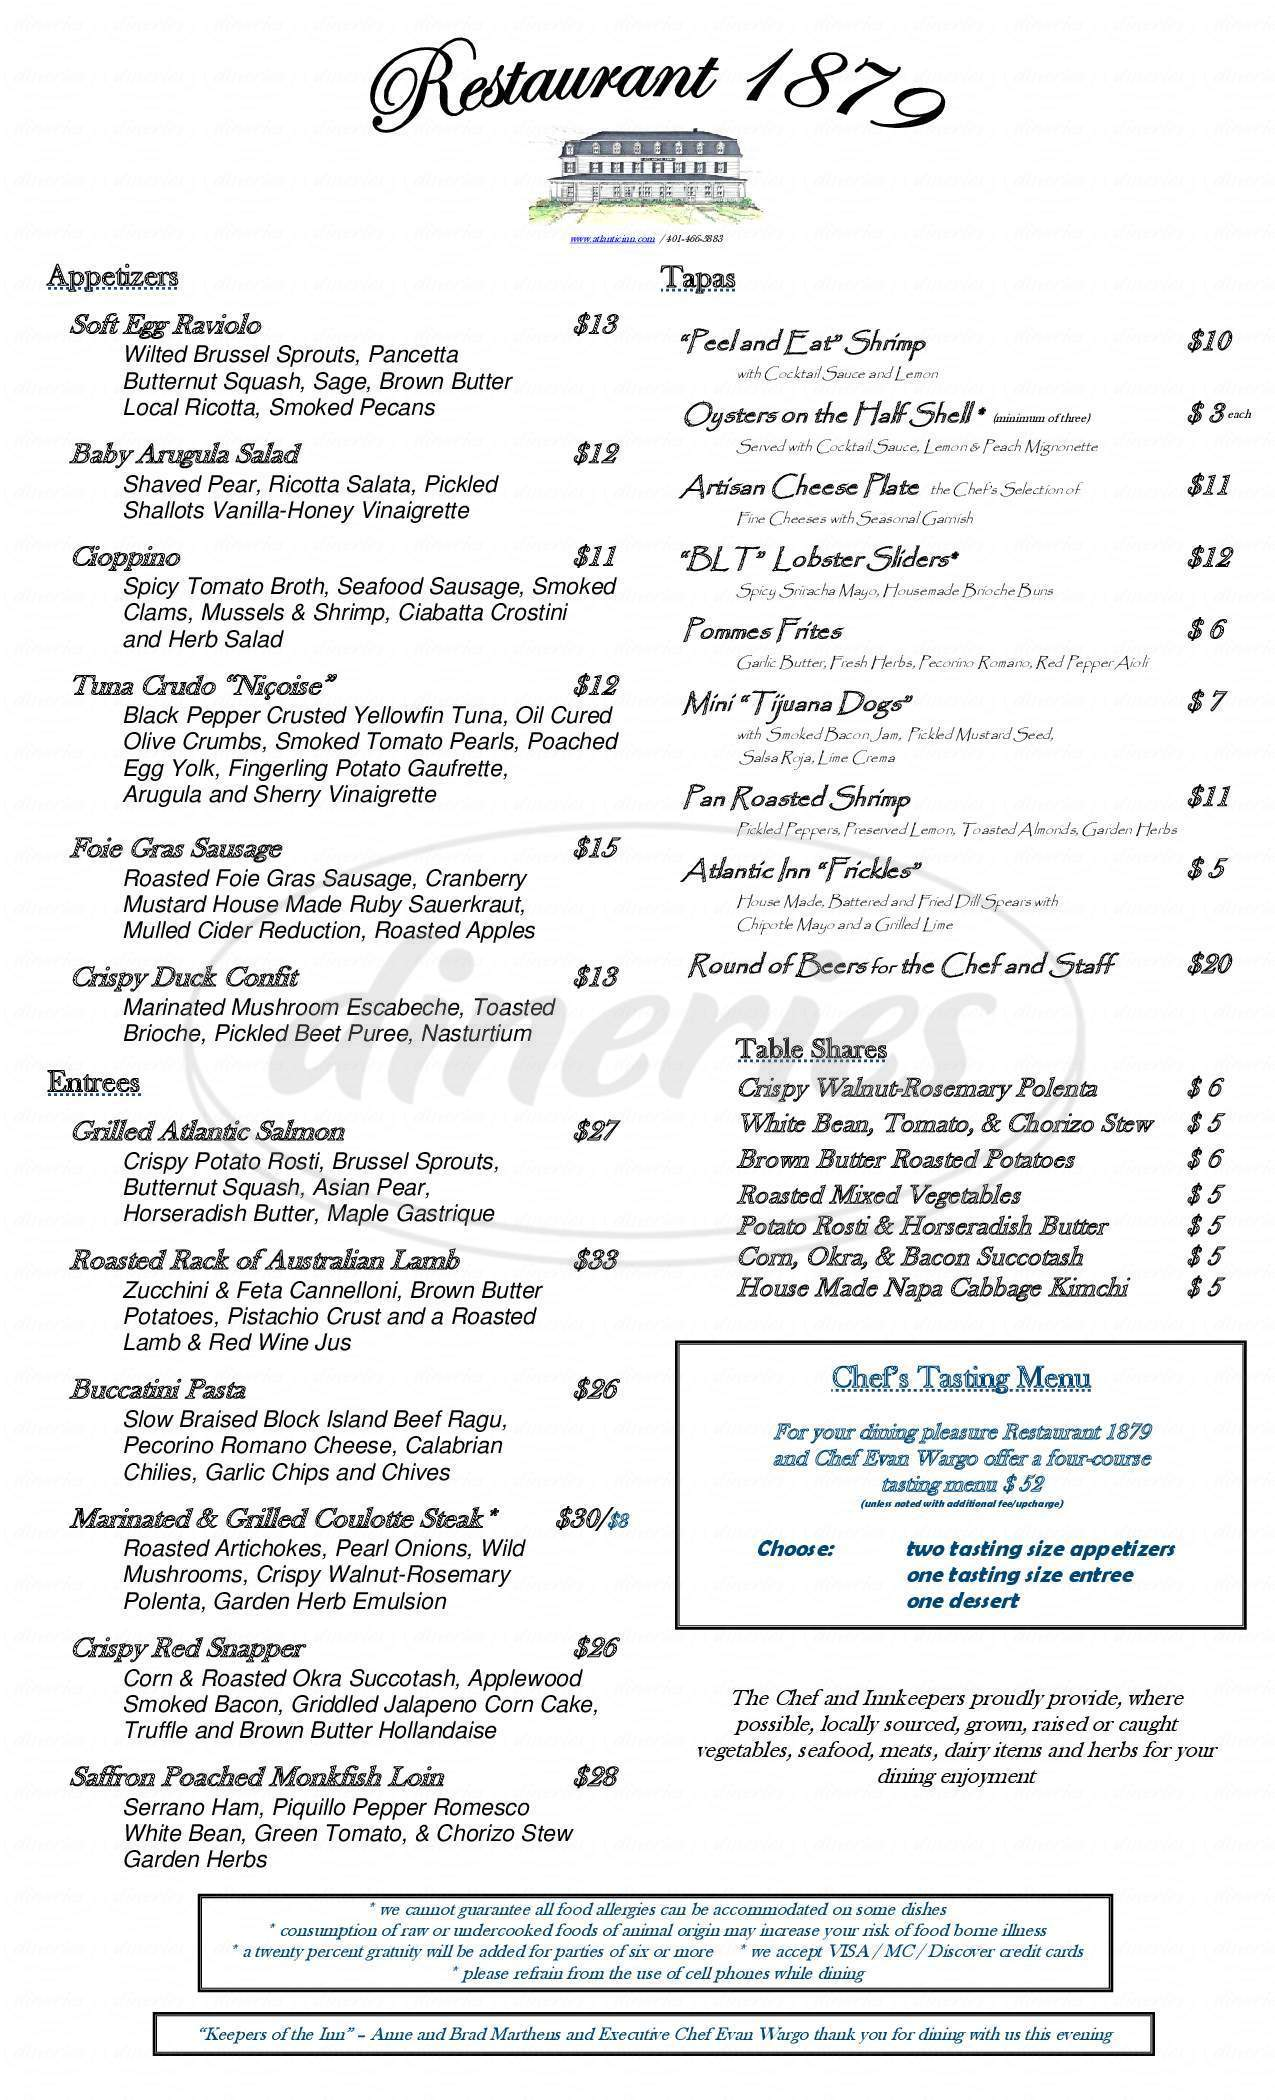 menu for Atlantic Inn